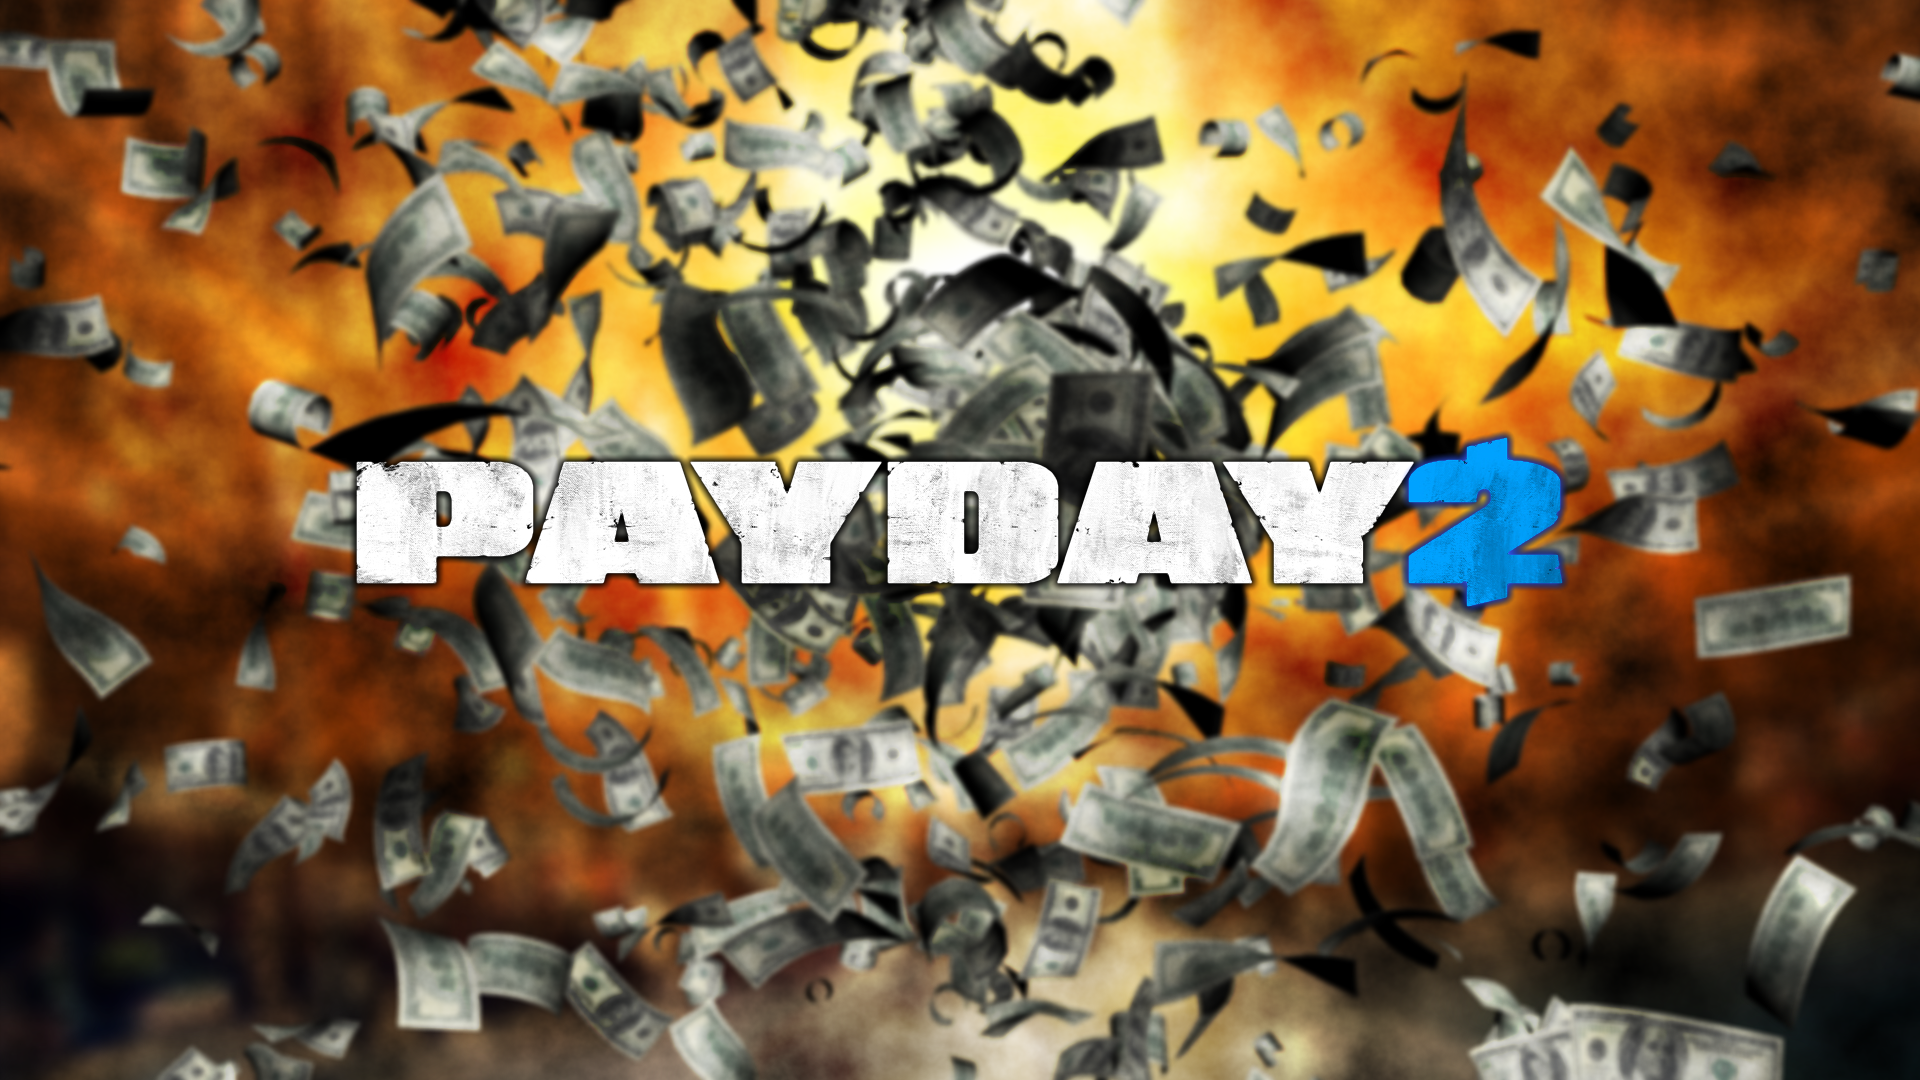 payday2wallpaperbybroke